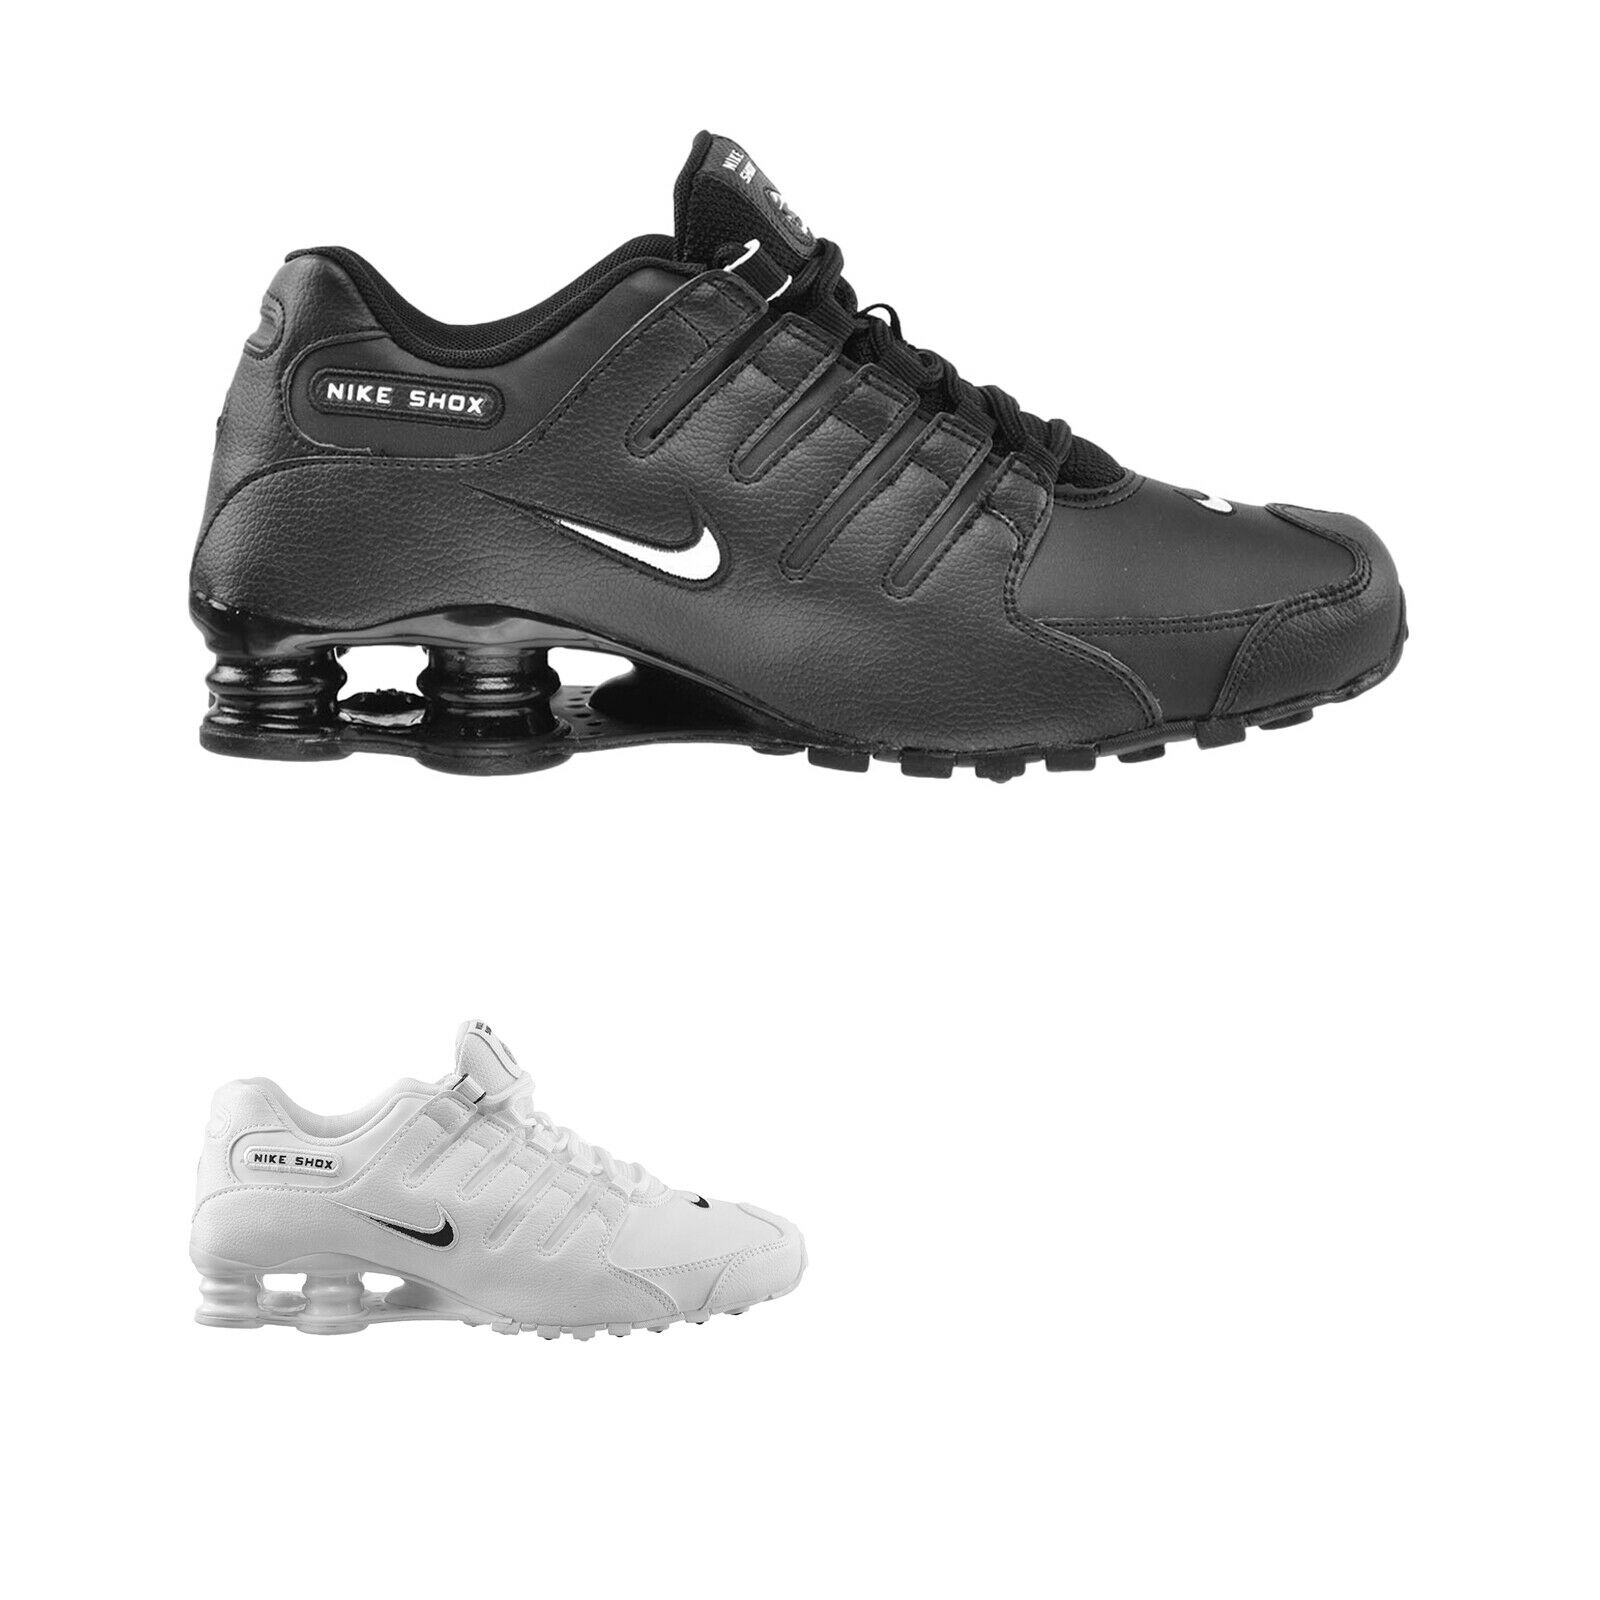 Nike Shox NZ Leather Synthetic Sporty Lace-Up Running Turnschuhe Herren Trainer